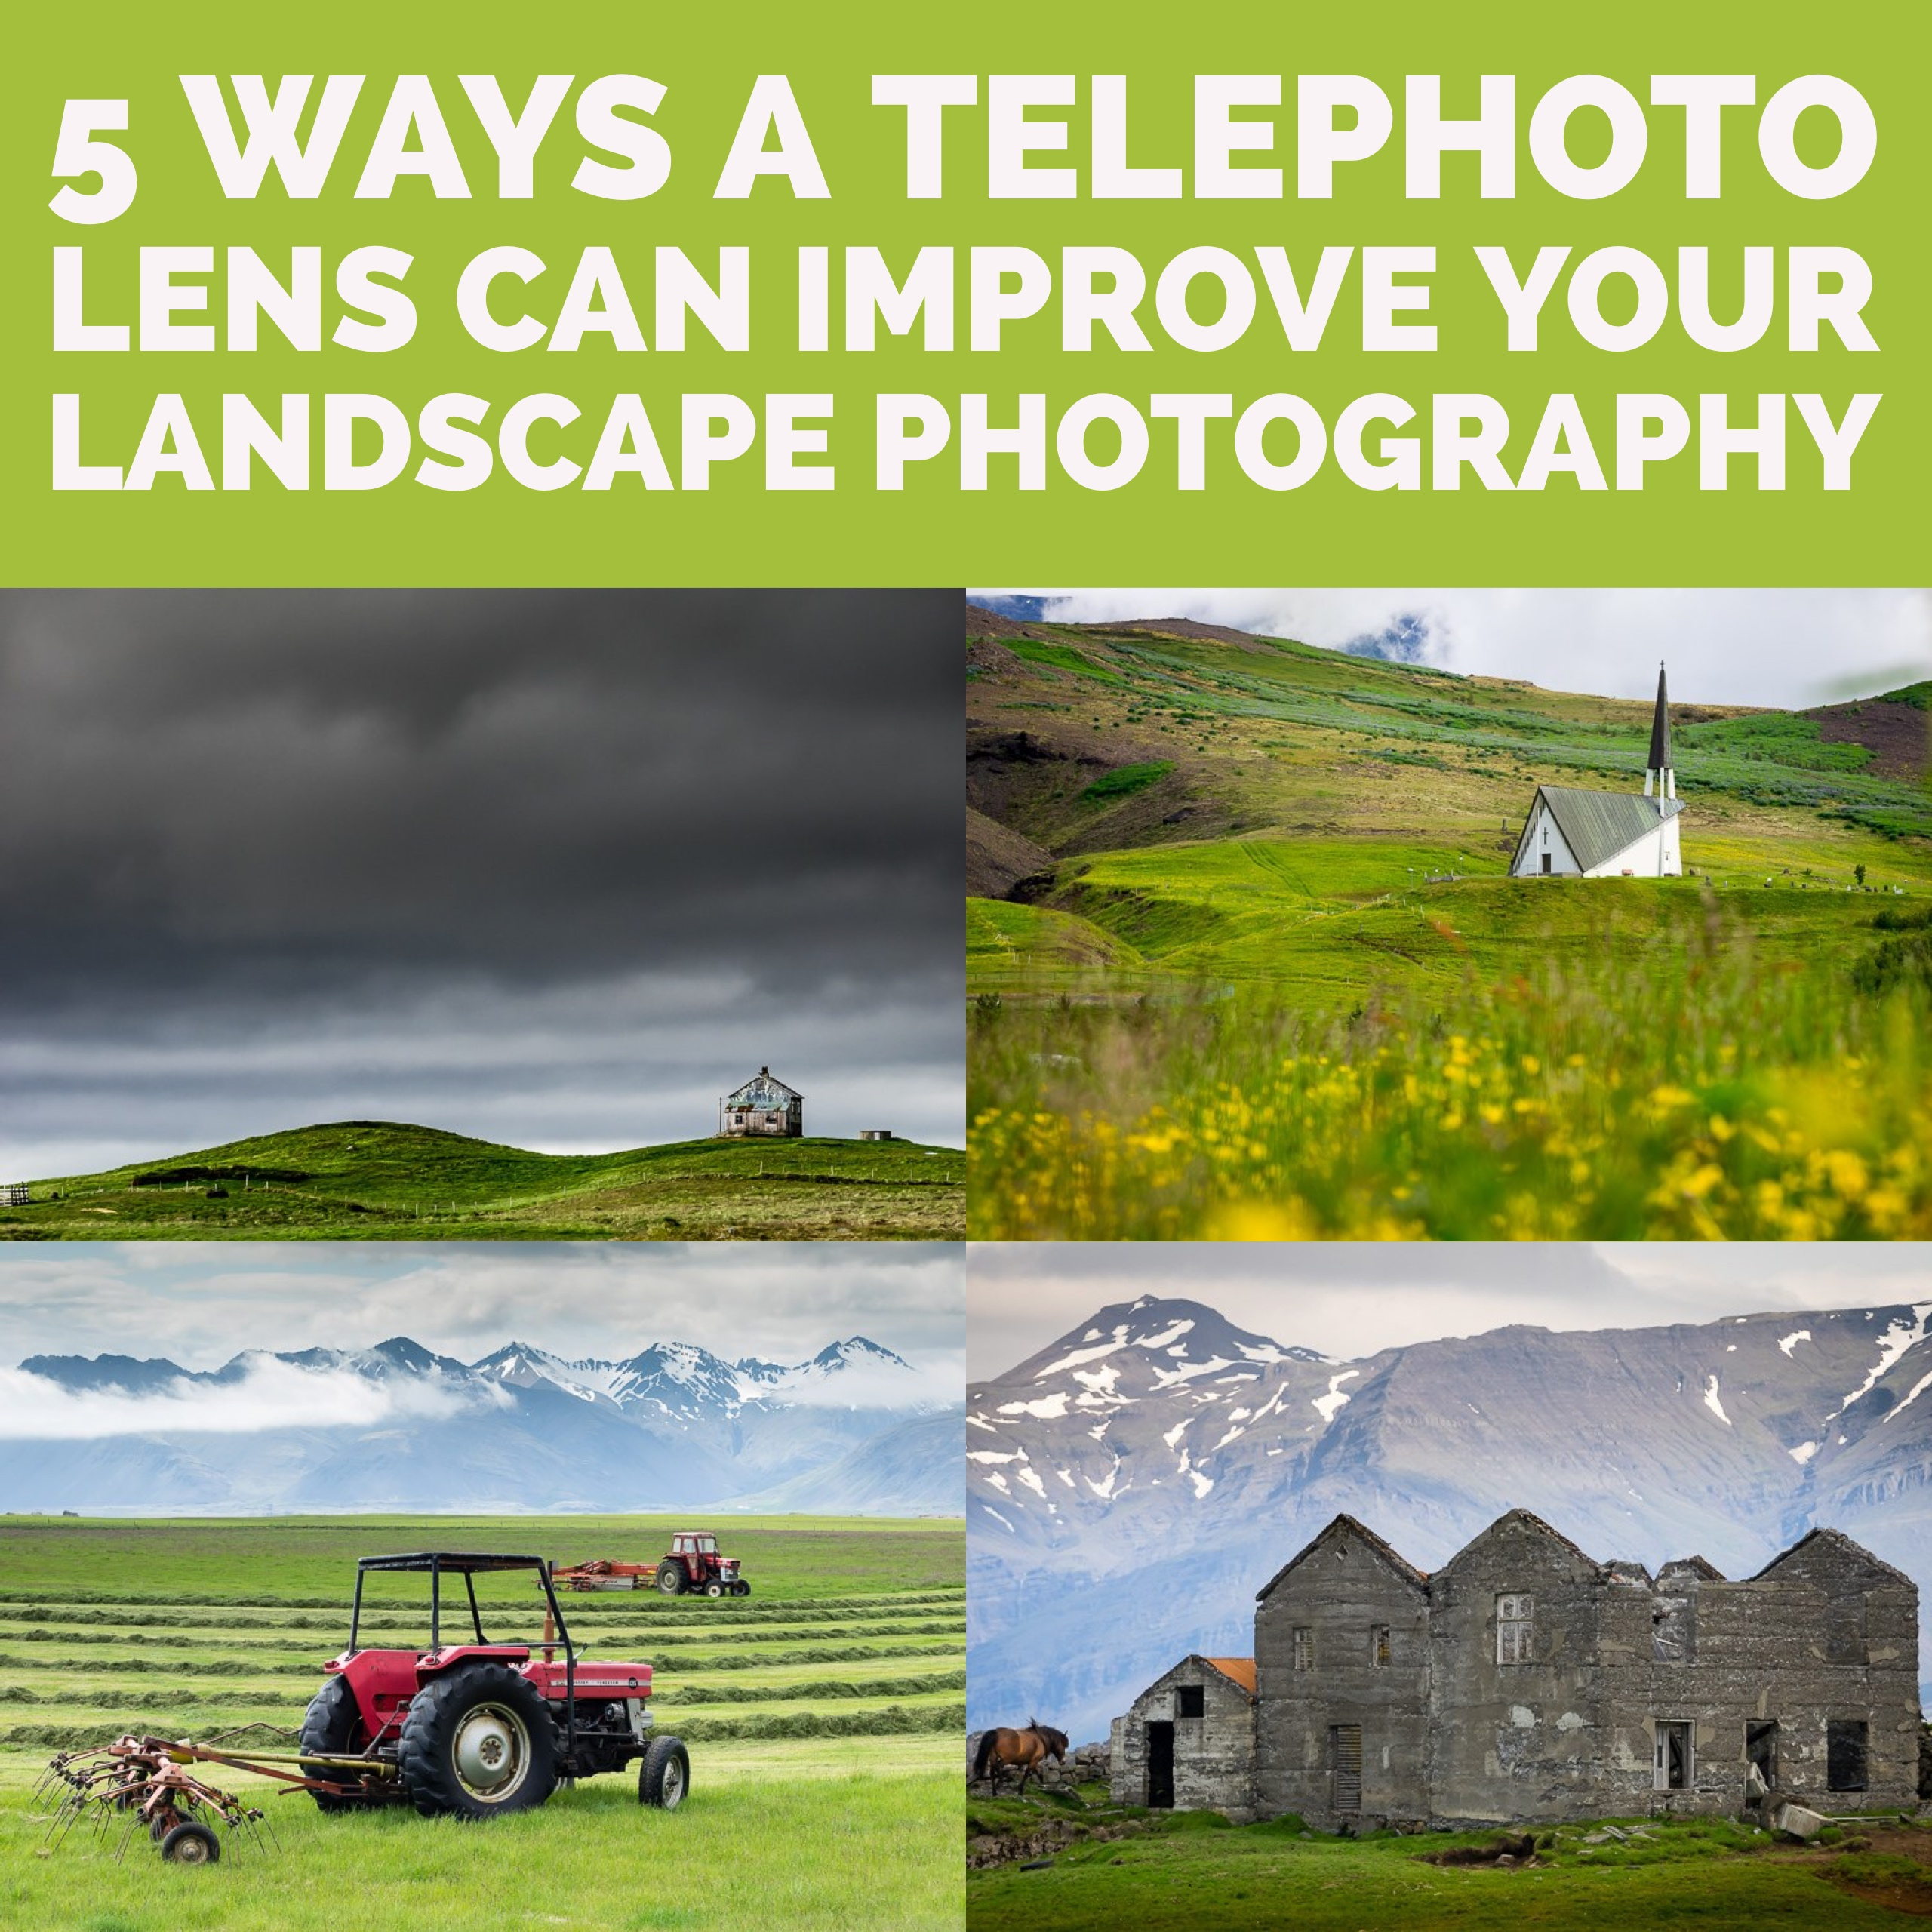 5 Ways a Telephoto Lens Can Improve Your Landscape